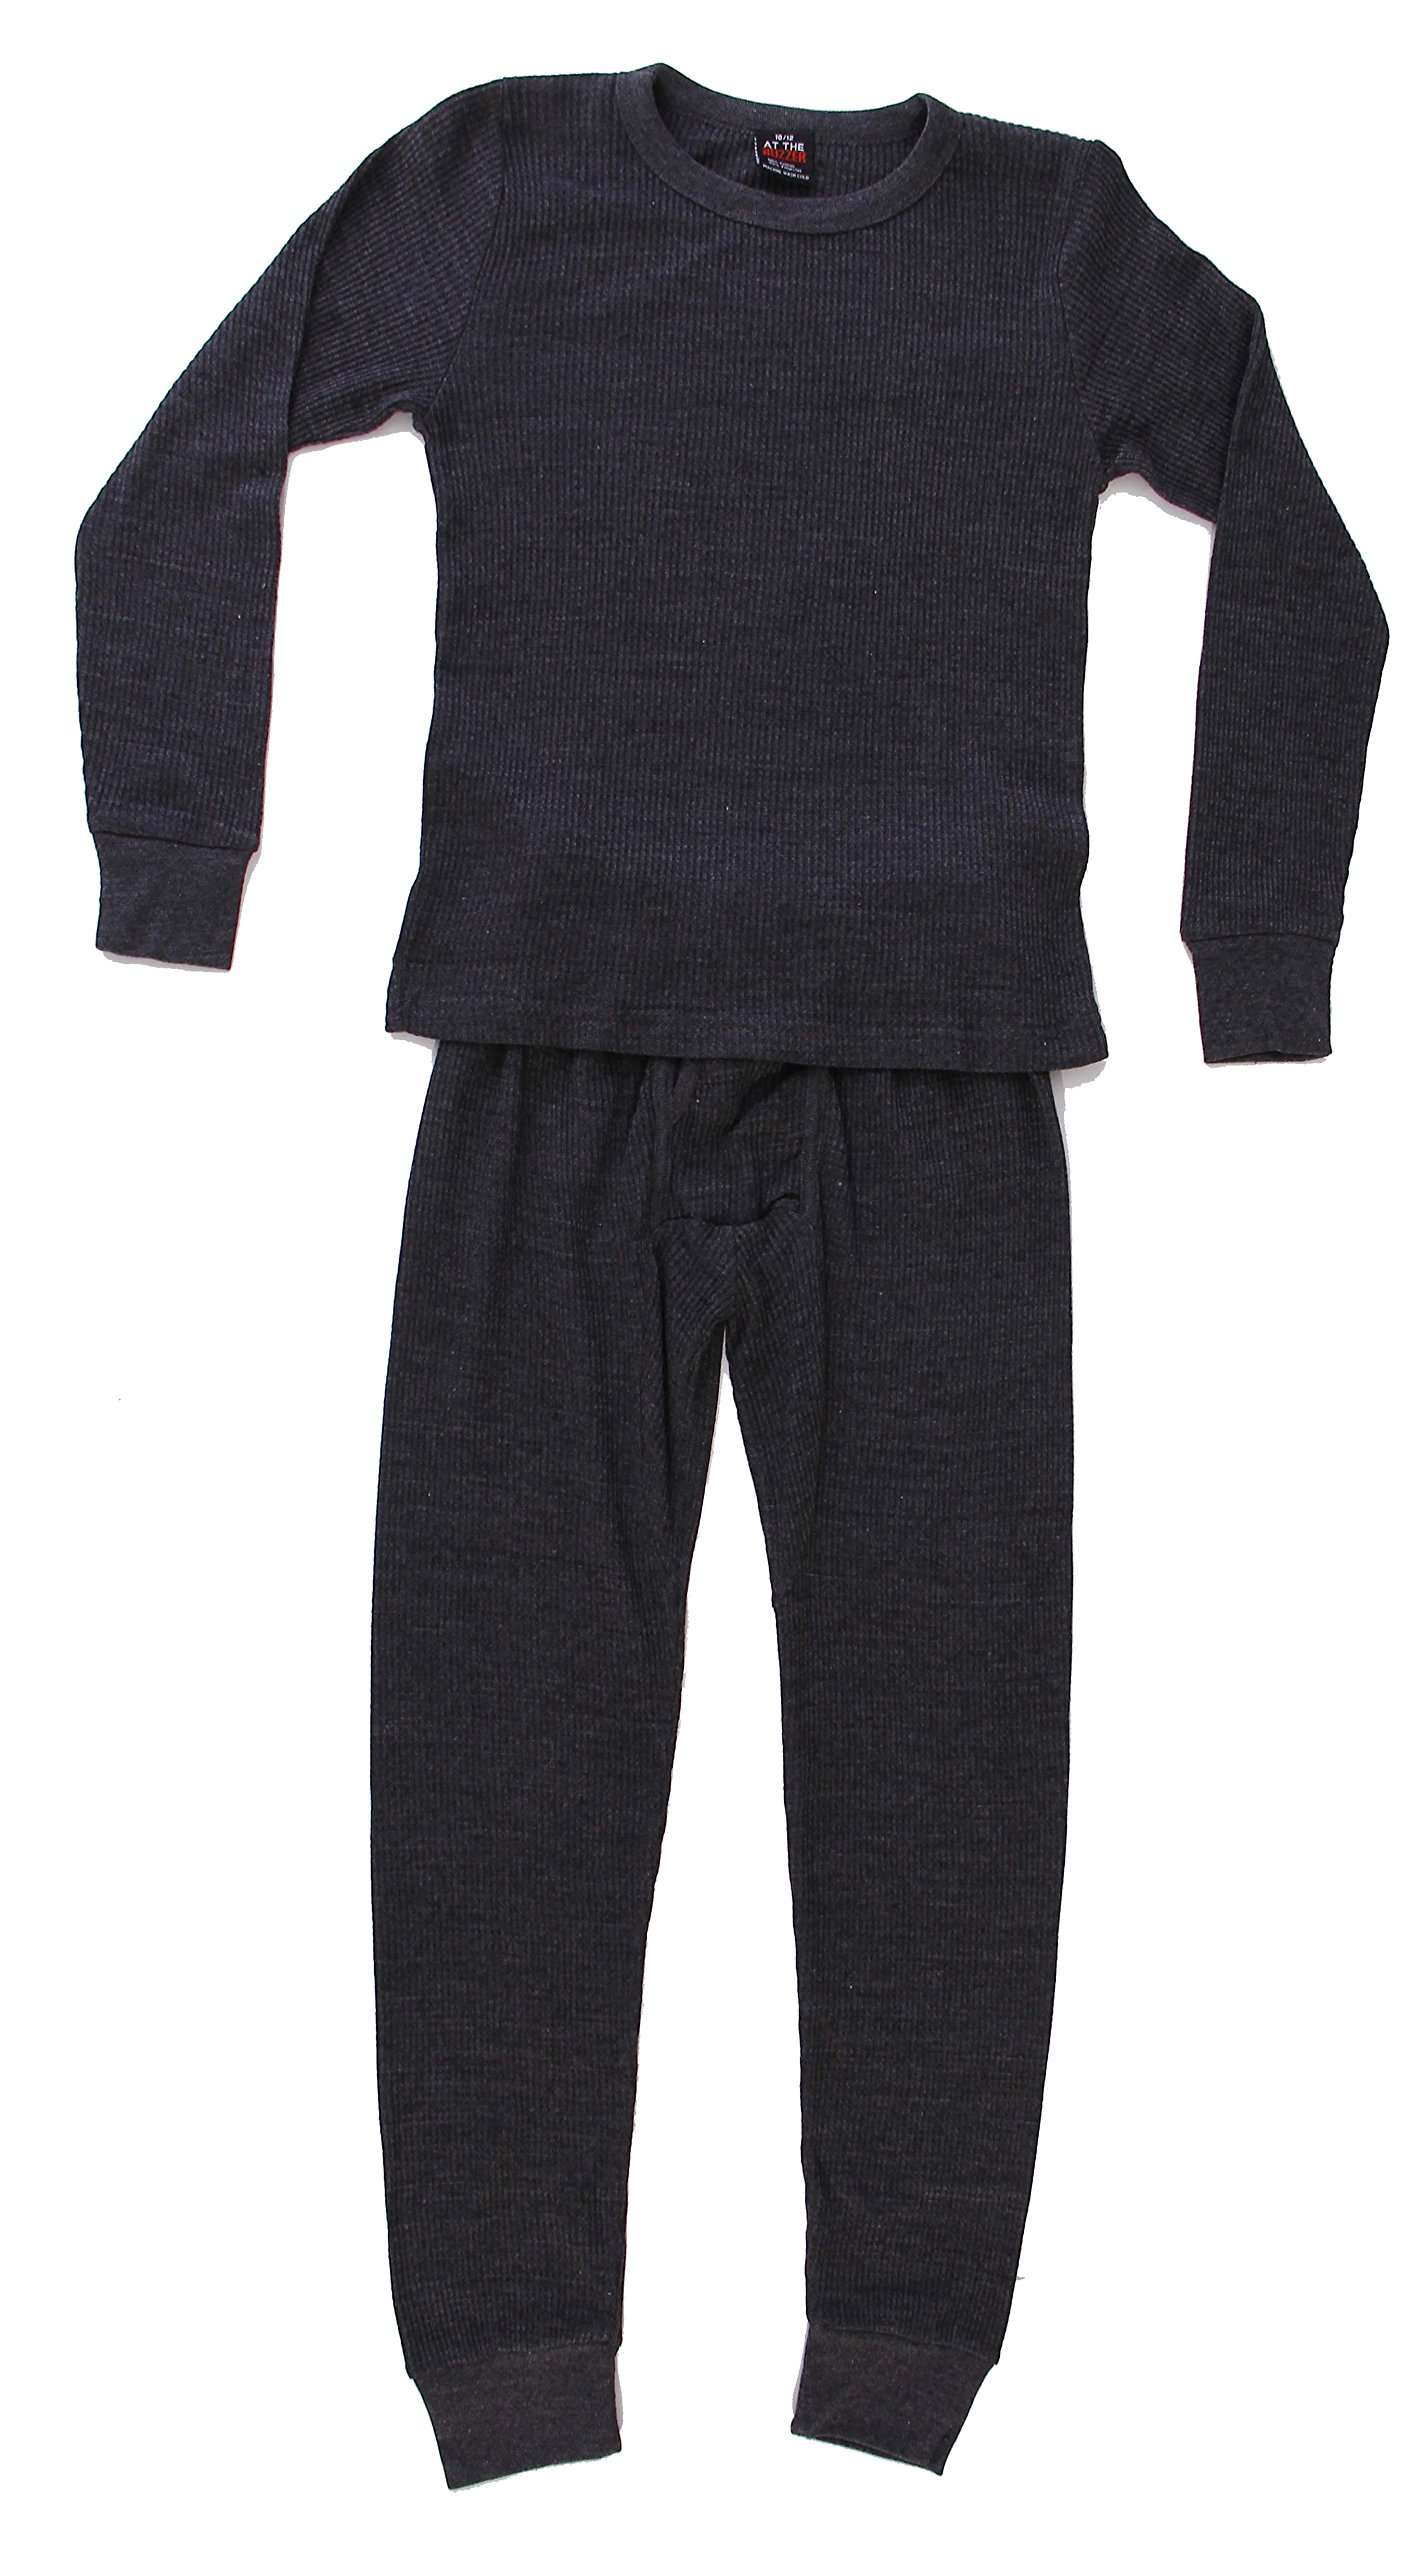 At The Buzzer Thermal Underwear Set for Boys 95362-Charcoal-10/12 by At The Buzzer